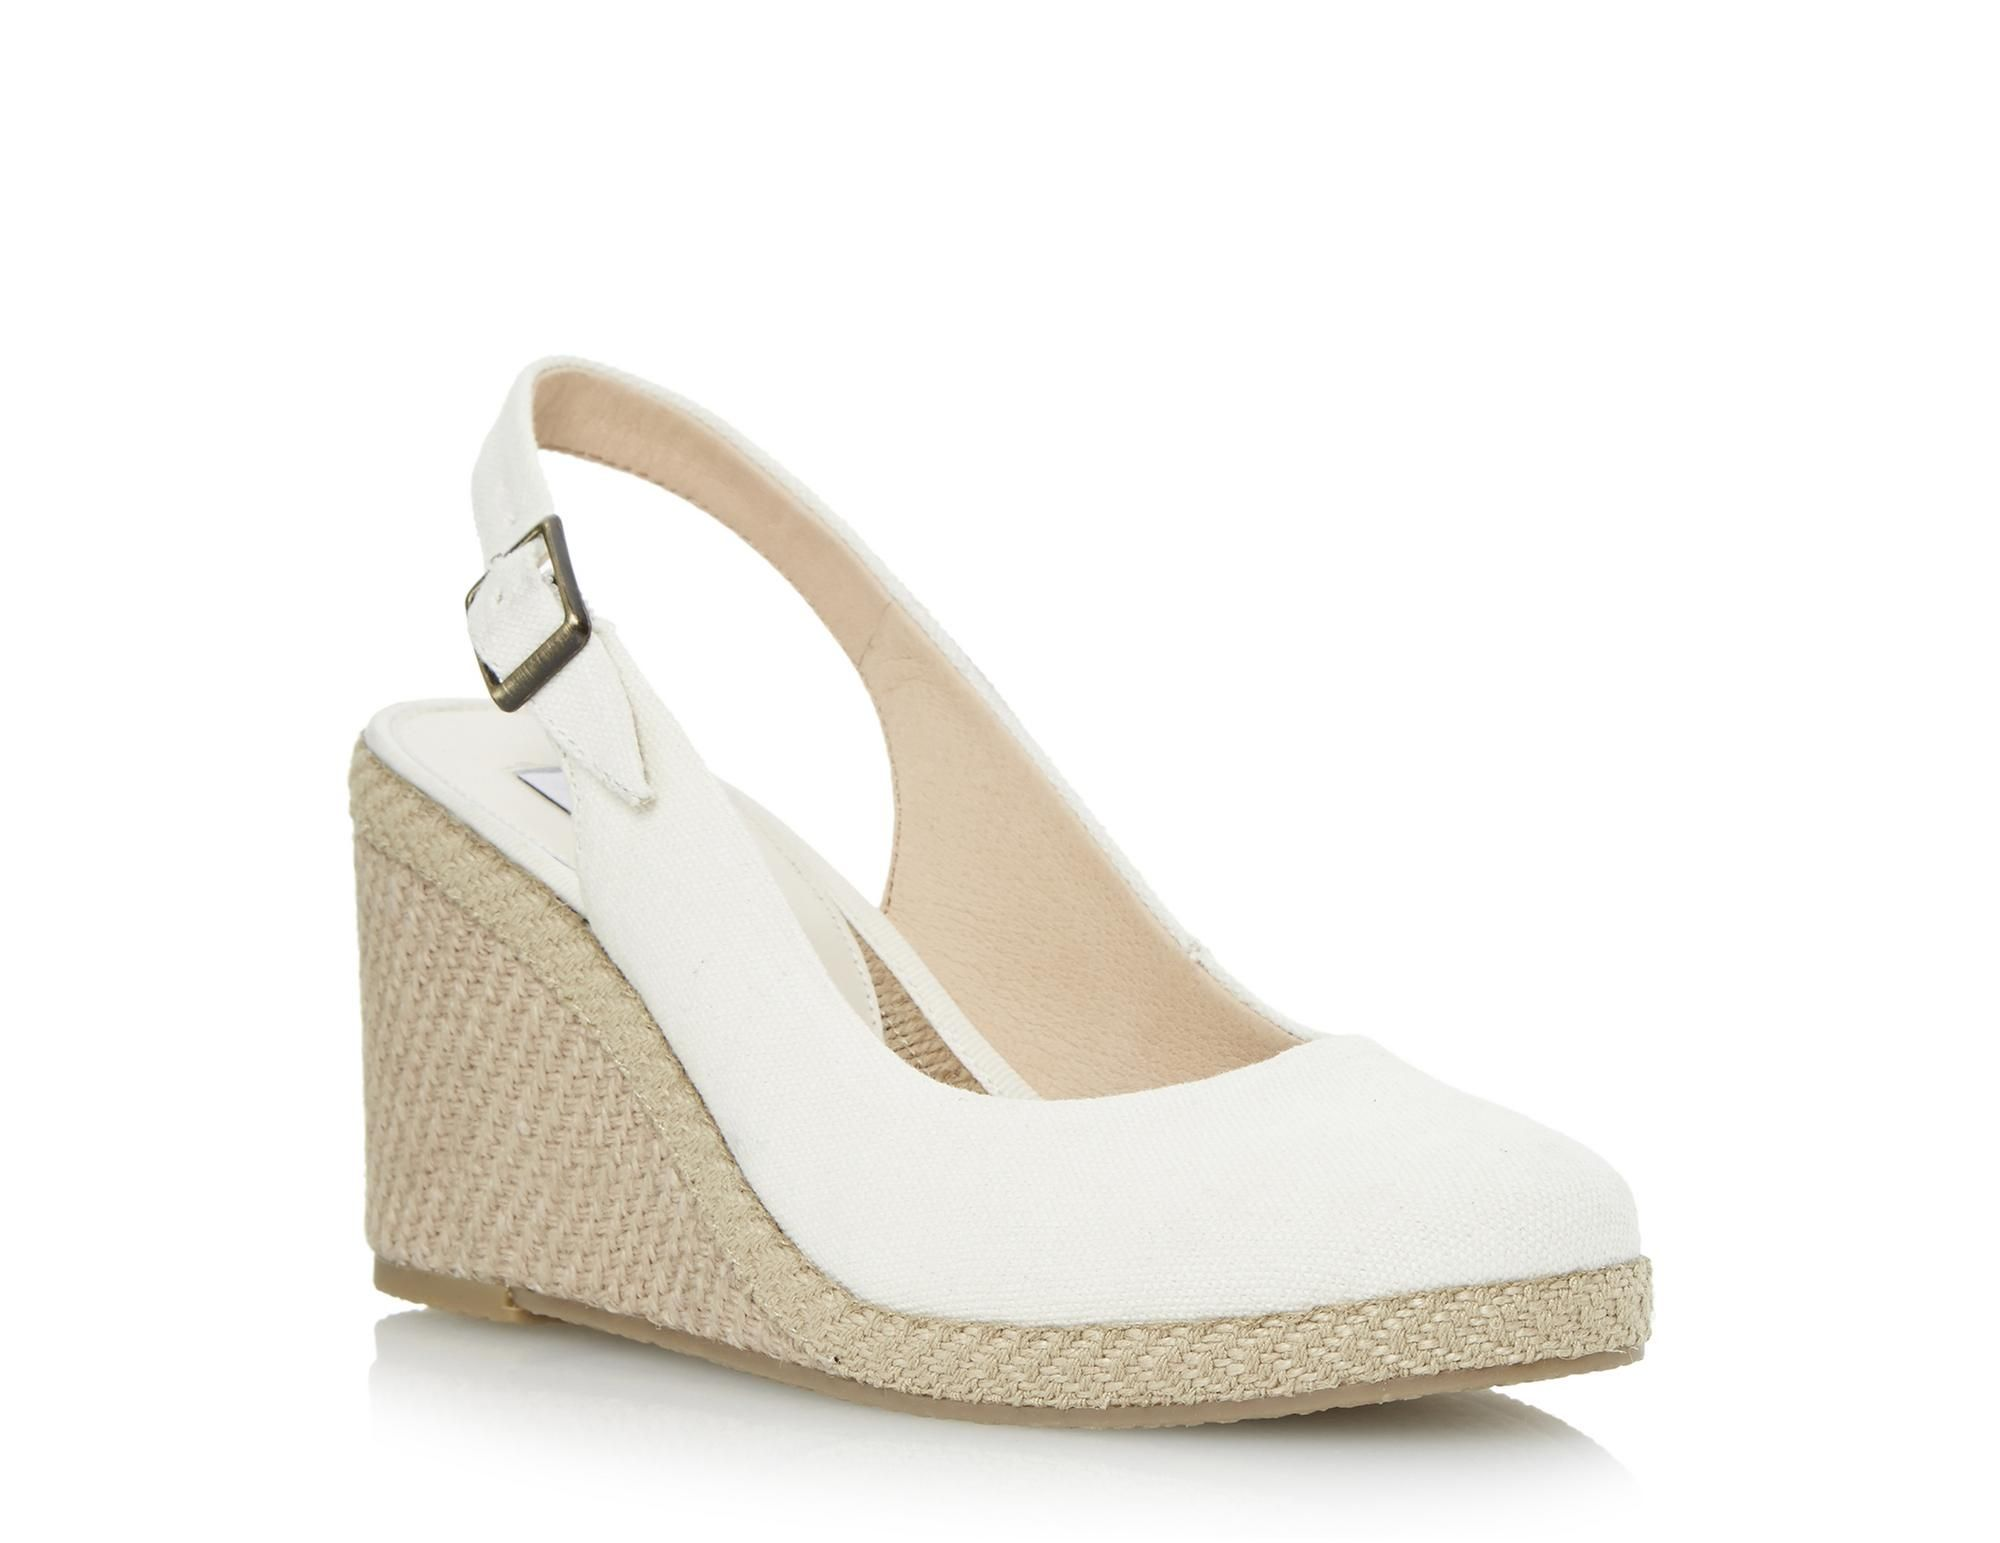 716afd68cfe This classic espadrille wedge sandal is a summer must have staple style.  Features a closed toe